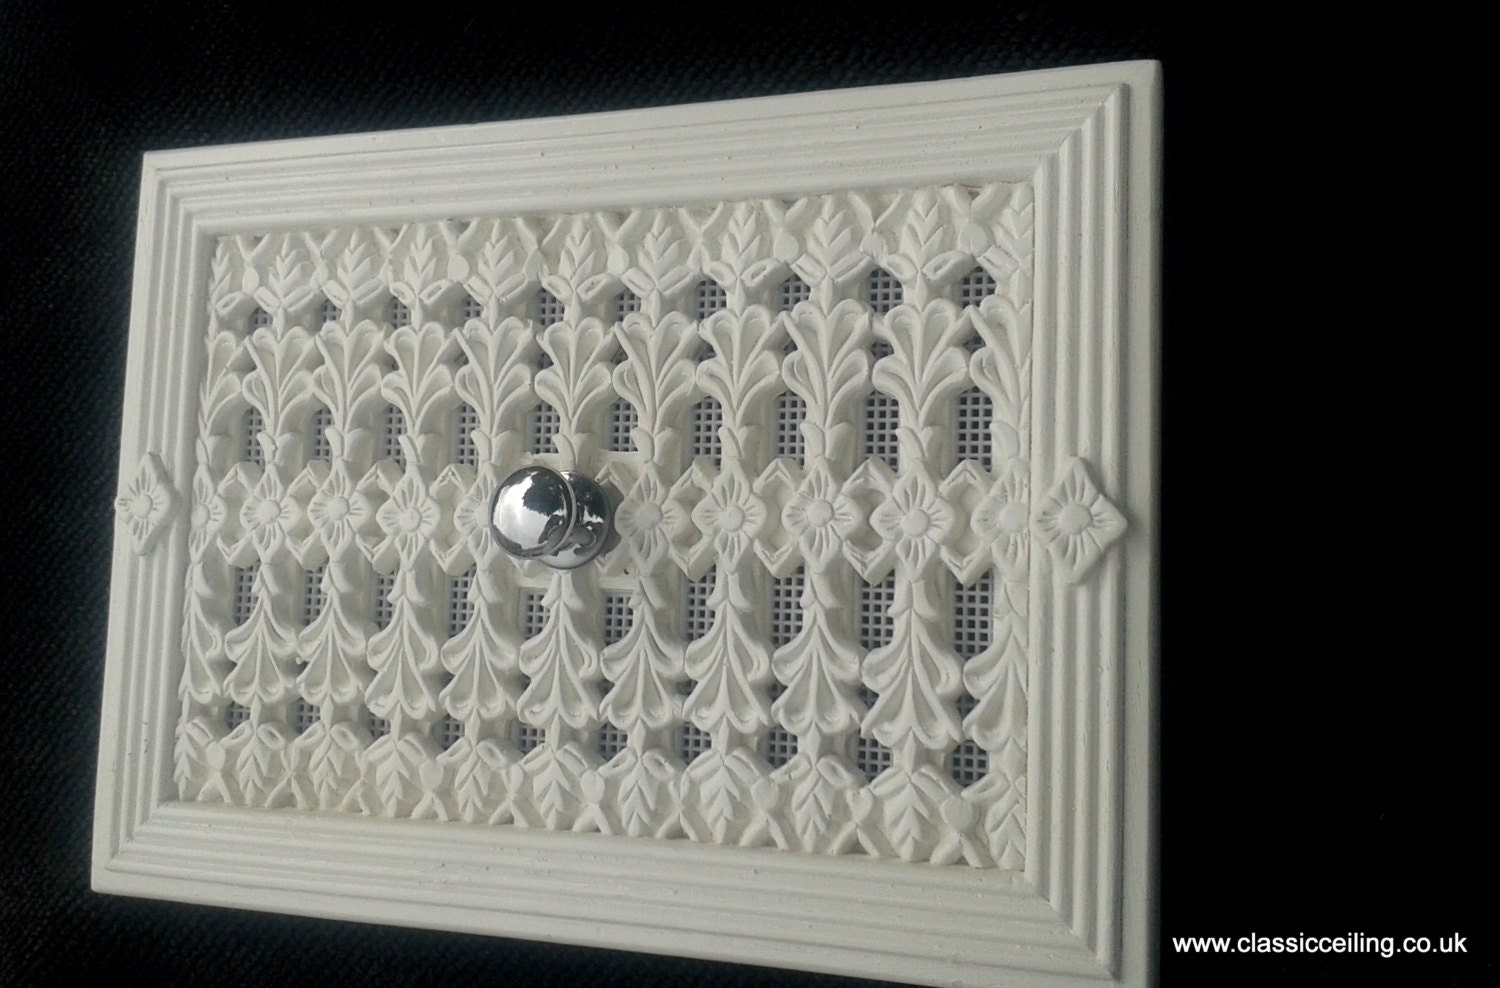 12x 8 victorian air vent cover hit miss open. Black Bedroom Furniture Sets. Home Design Ideas